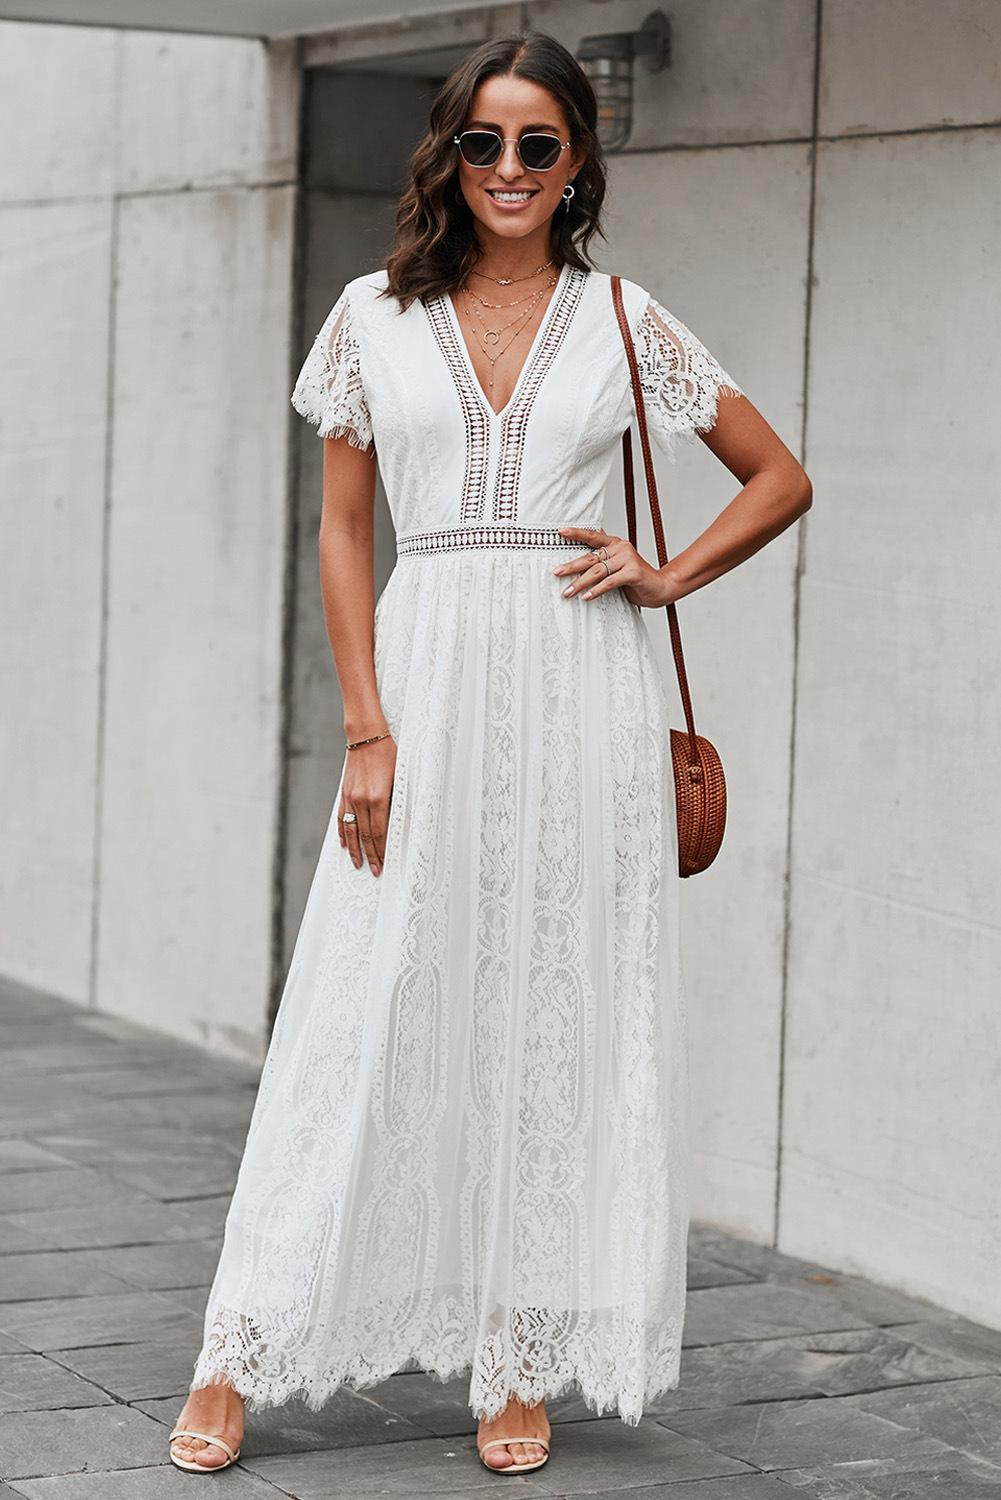 Women elegant lace embroidery dresses short sleeve sexy v-neck crochet hollow summer maxi white party dress long casual prom evening dress